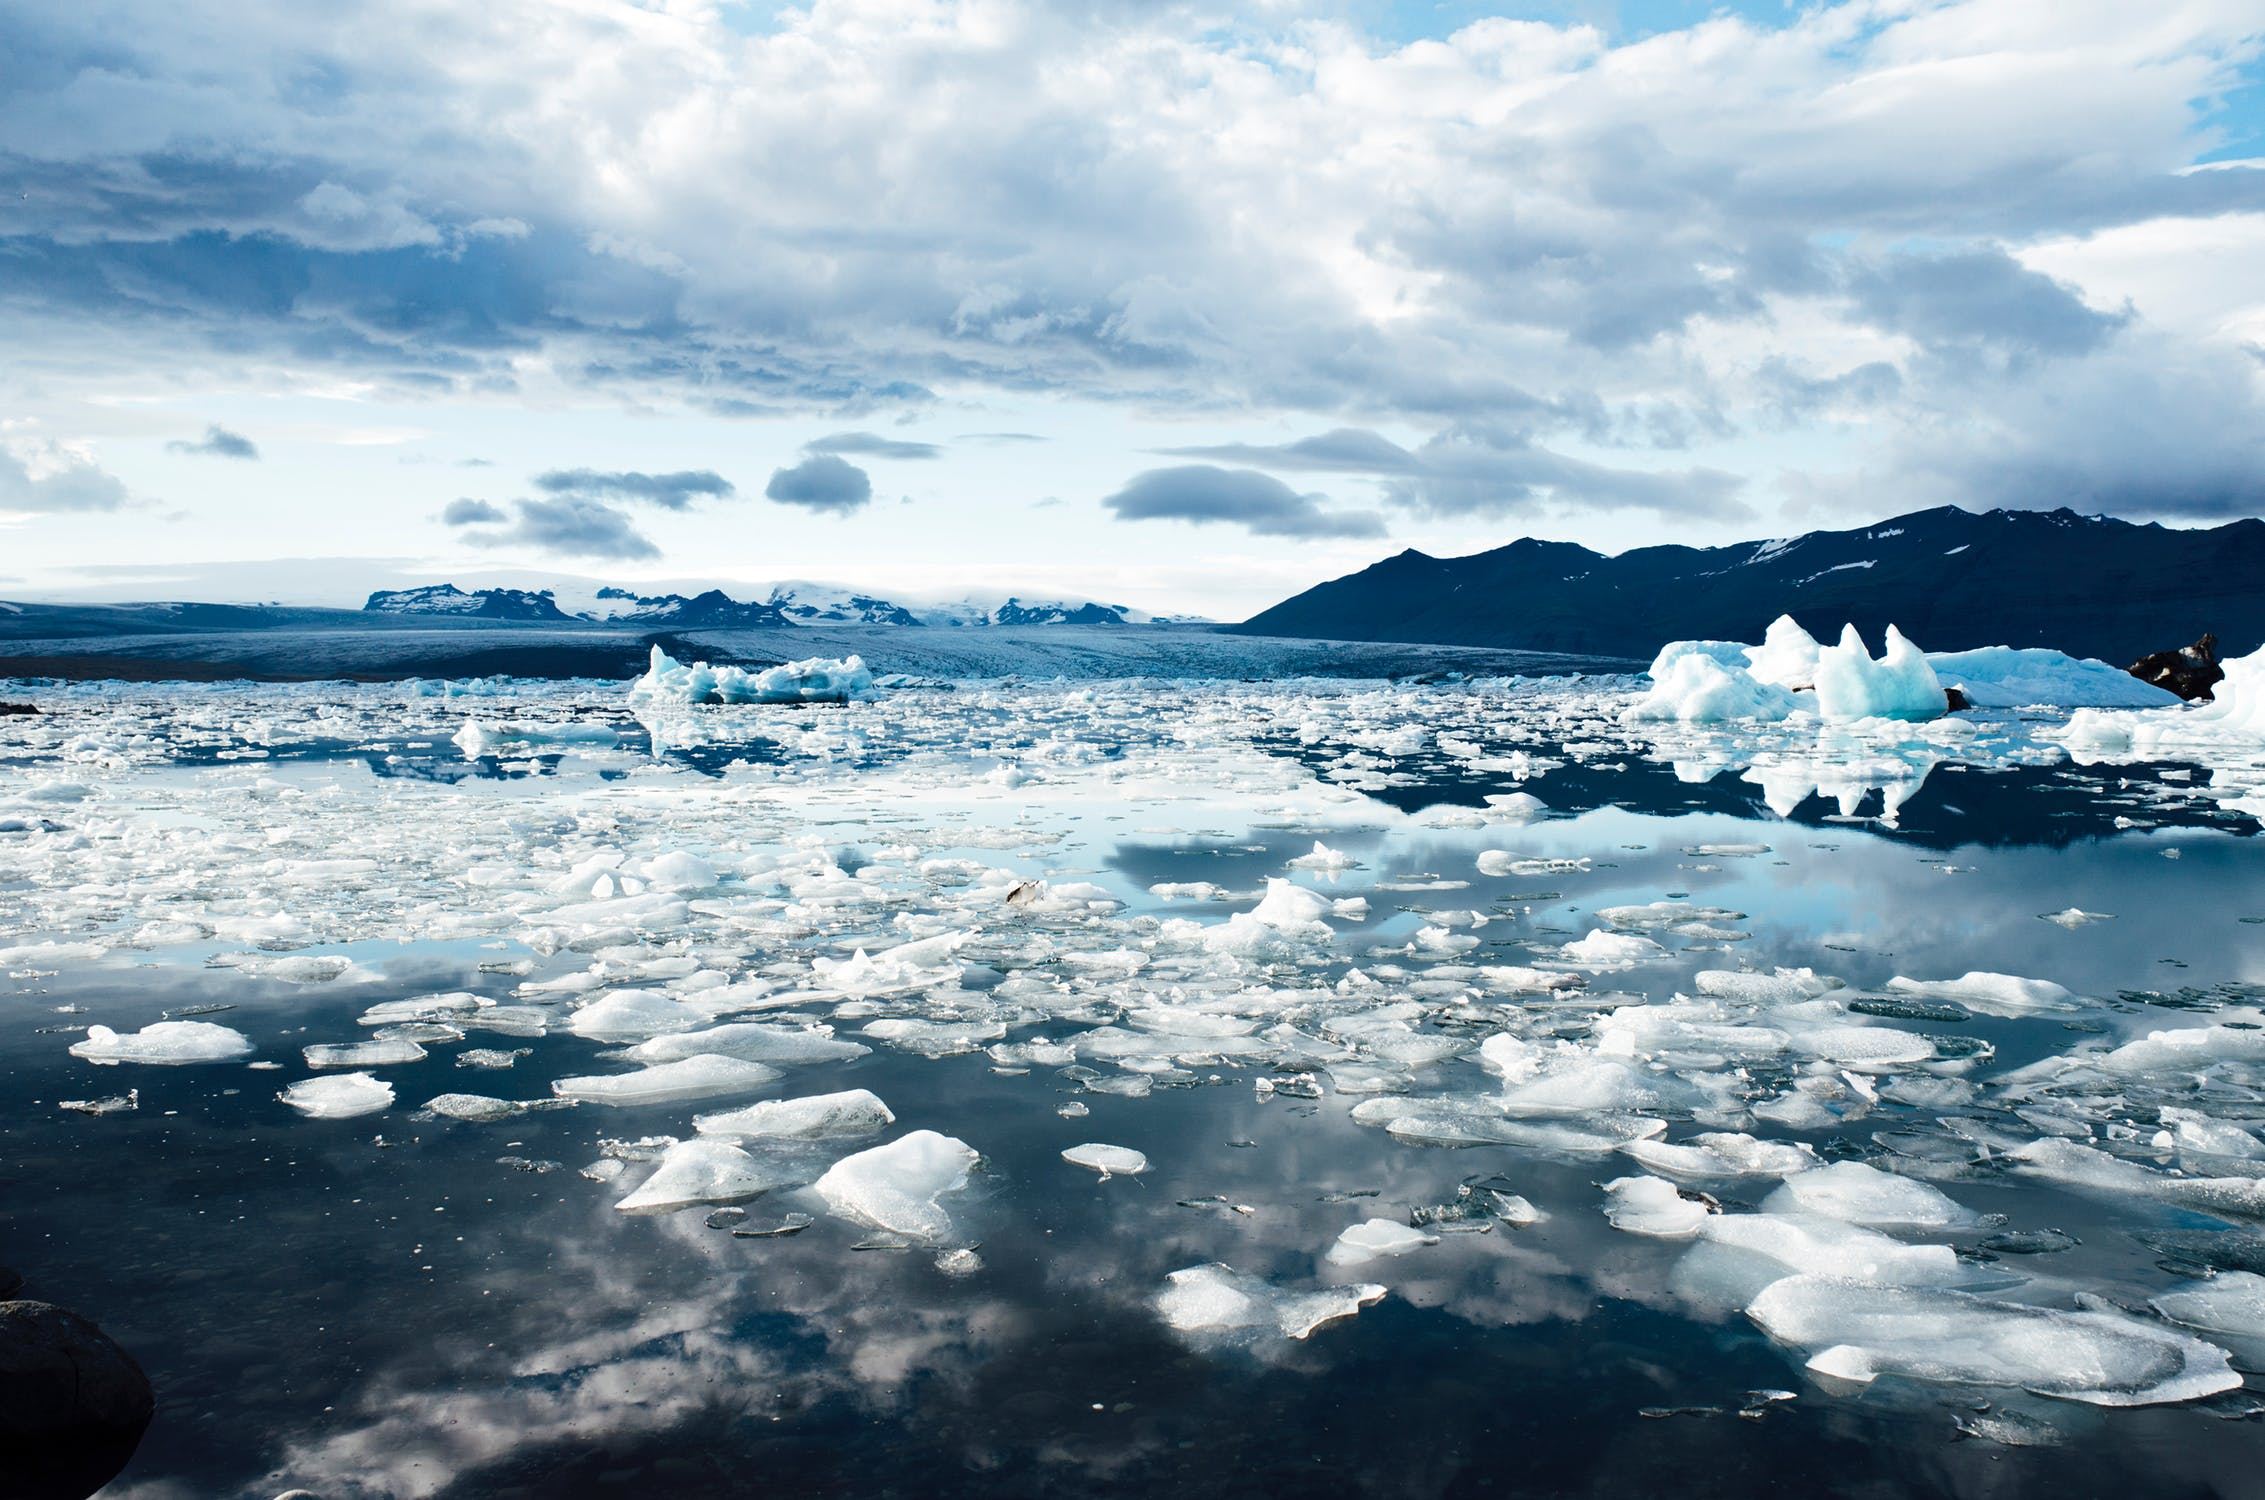 Melting ice in the Arctic result of climate change